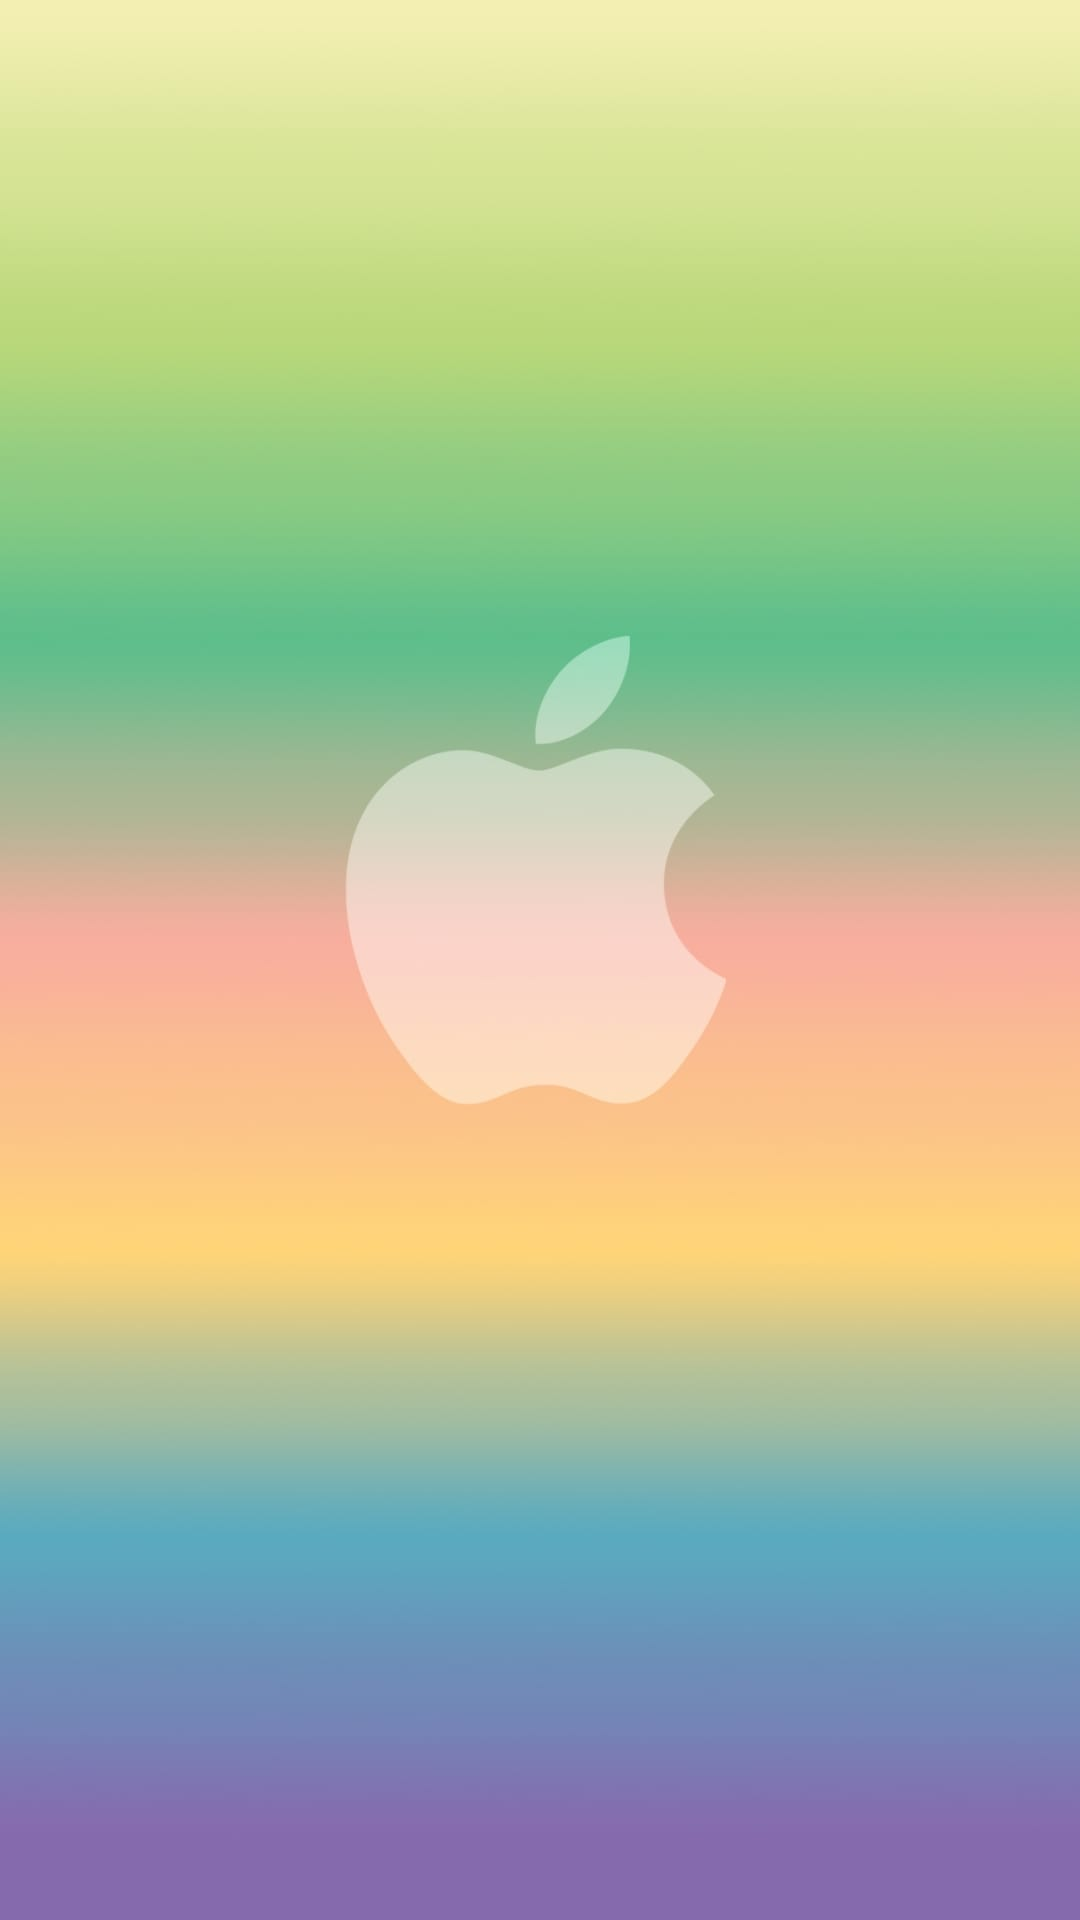 Fondos de pantalla de apple para el iphone for Imagenes para fondo de pantalla wallpapers